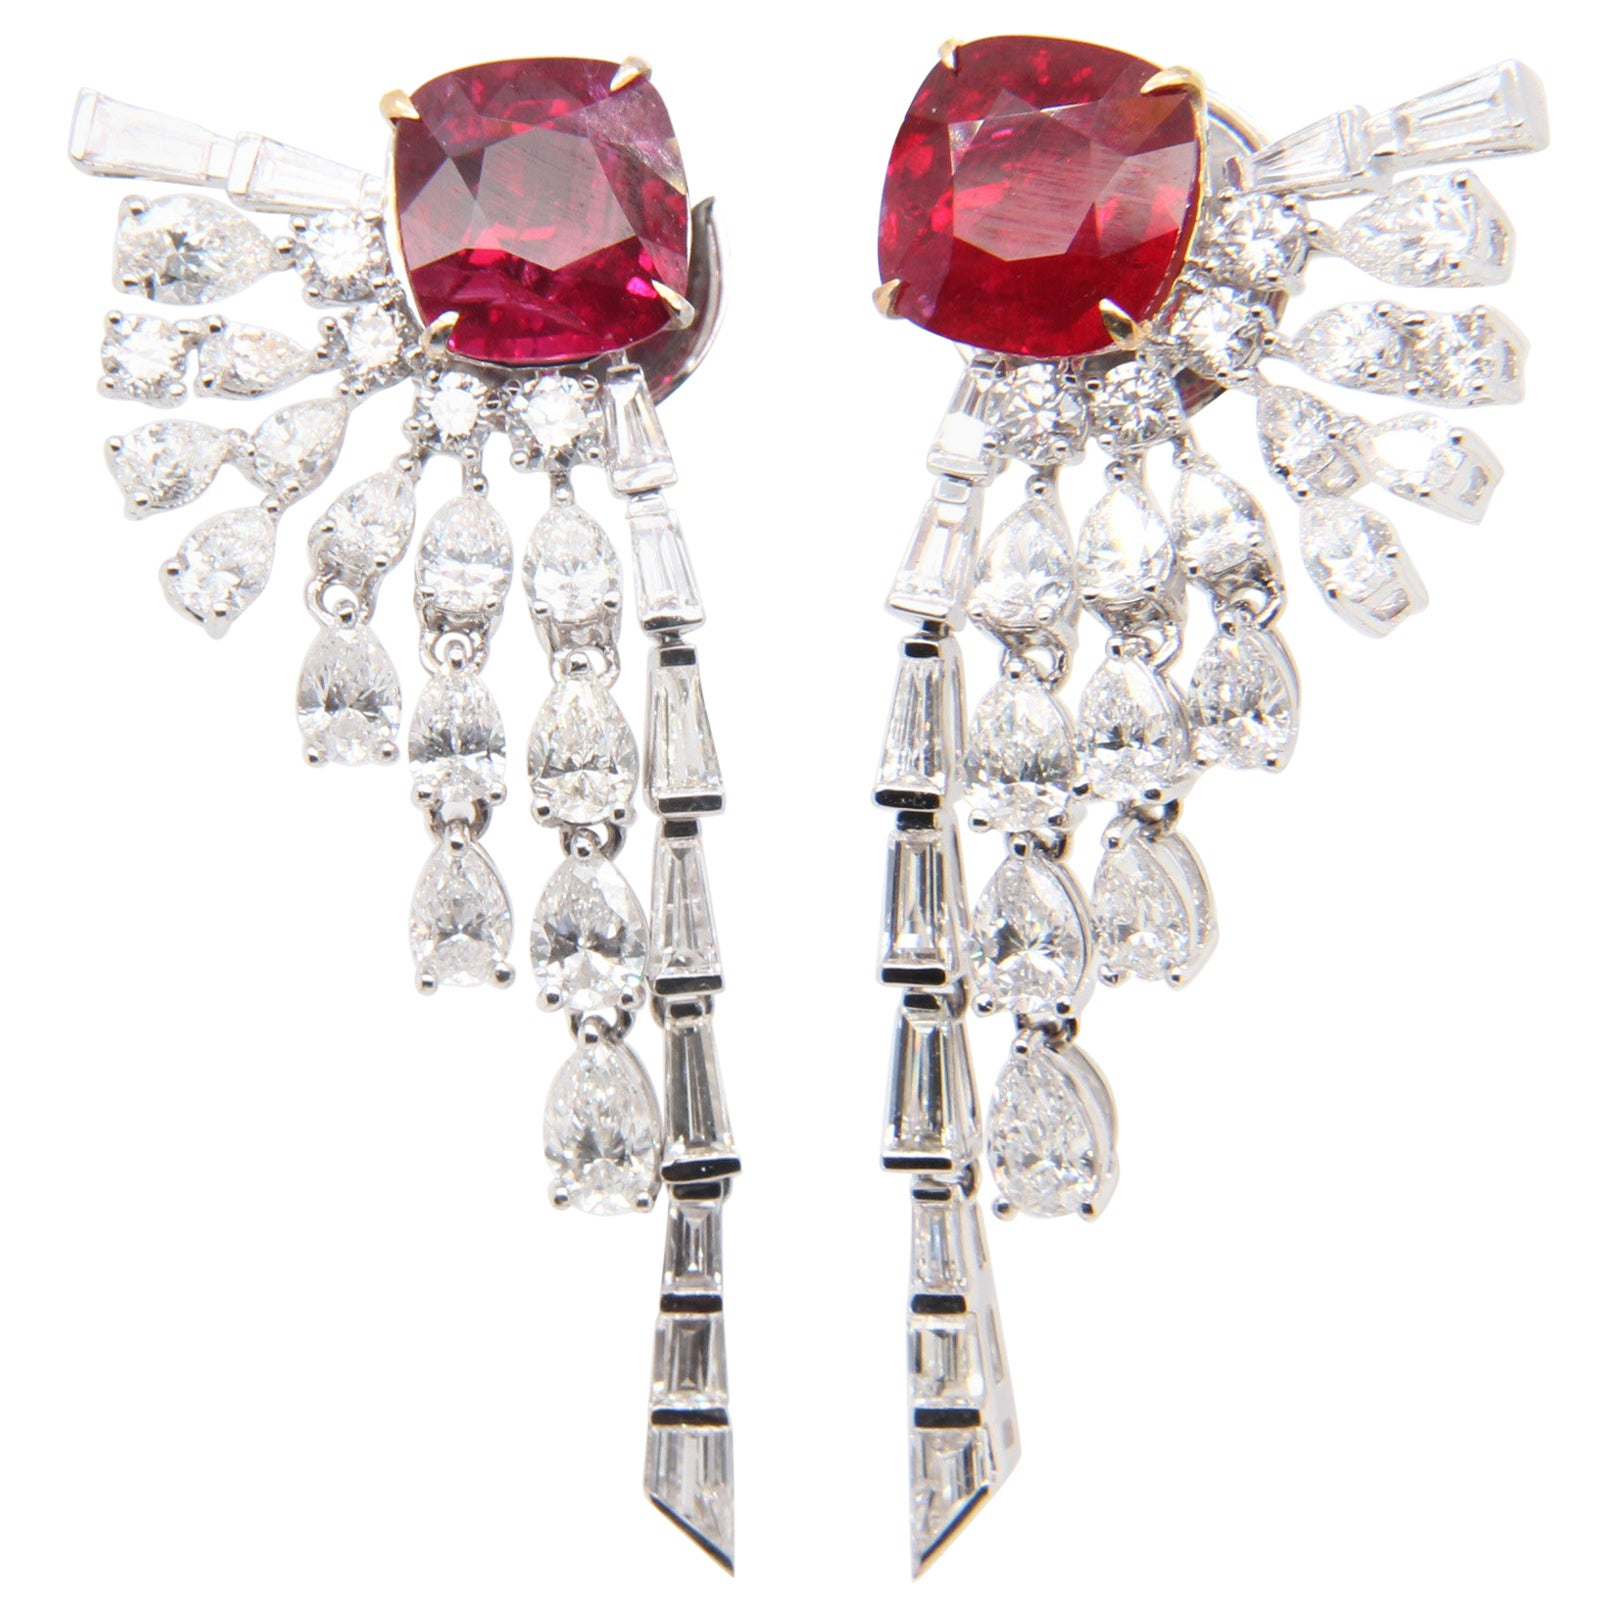 GRS Certified 5 ct Burmese 'Pigeon Blood' Ruby and Diamond Earring in 18K Gold